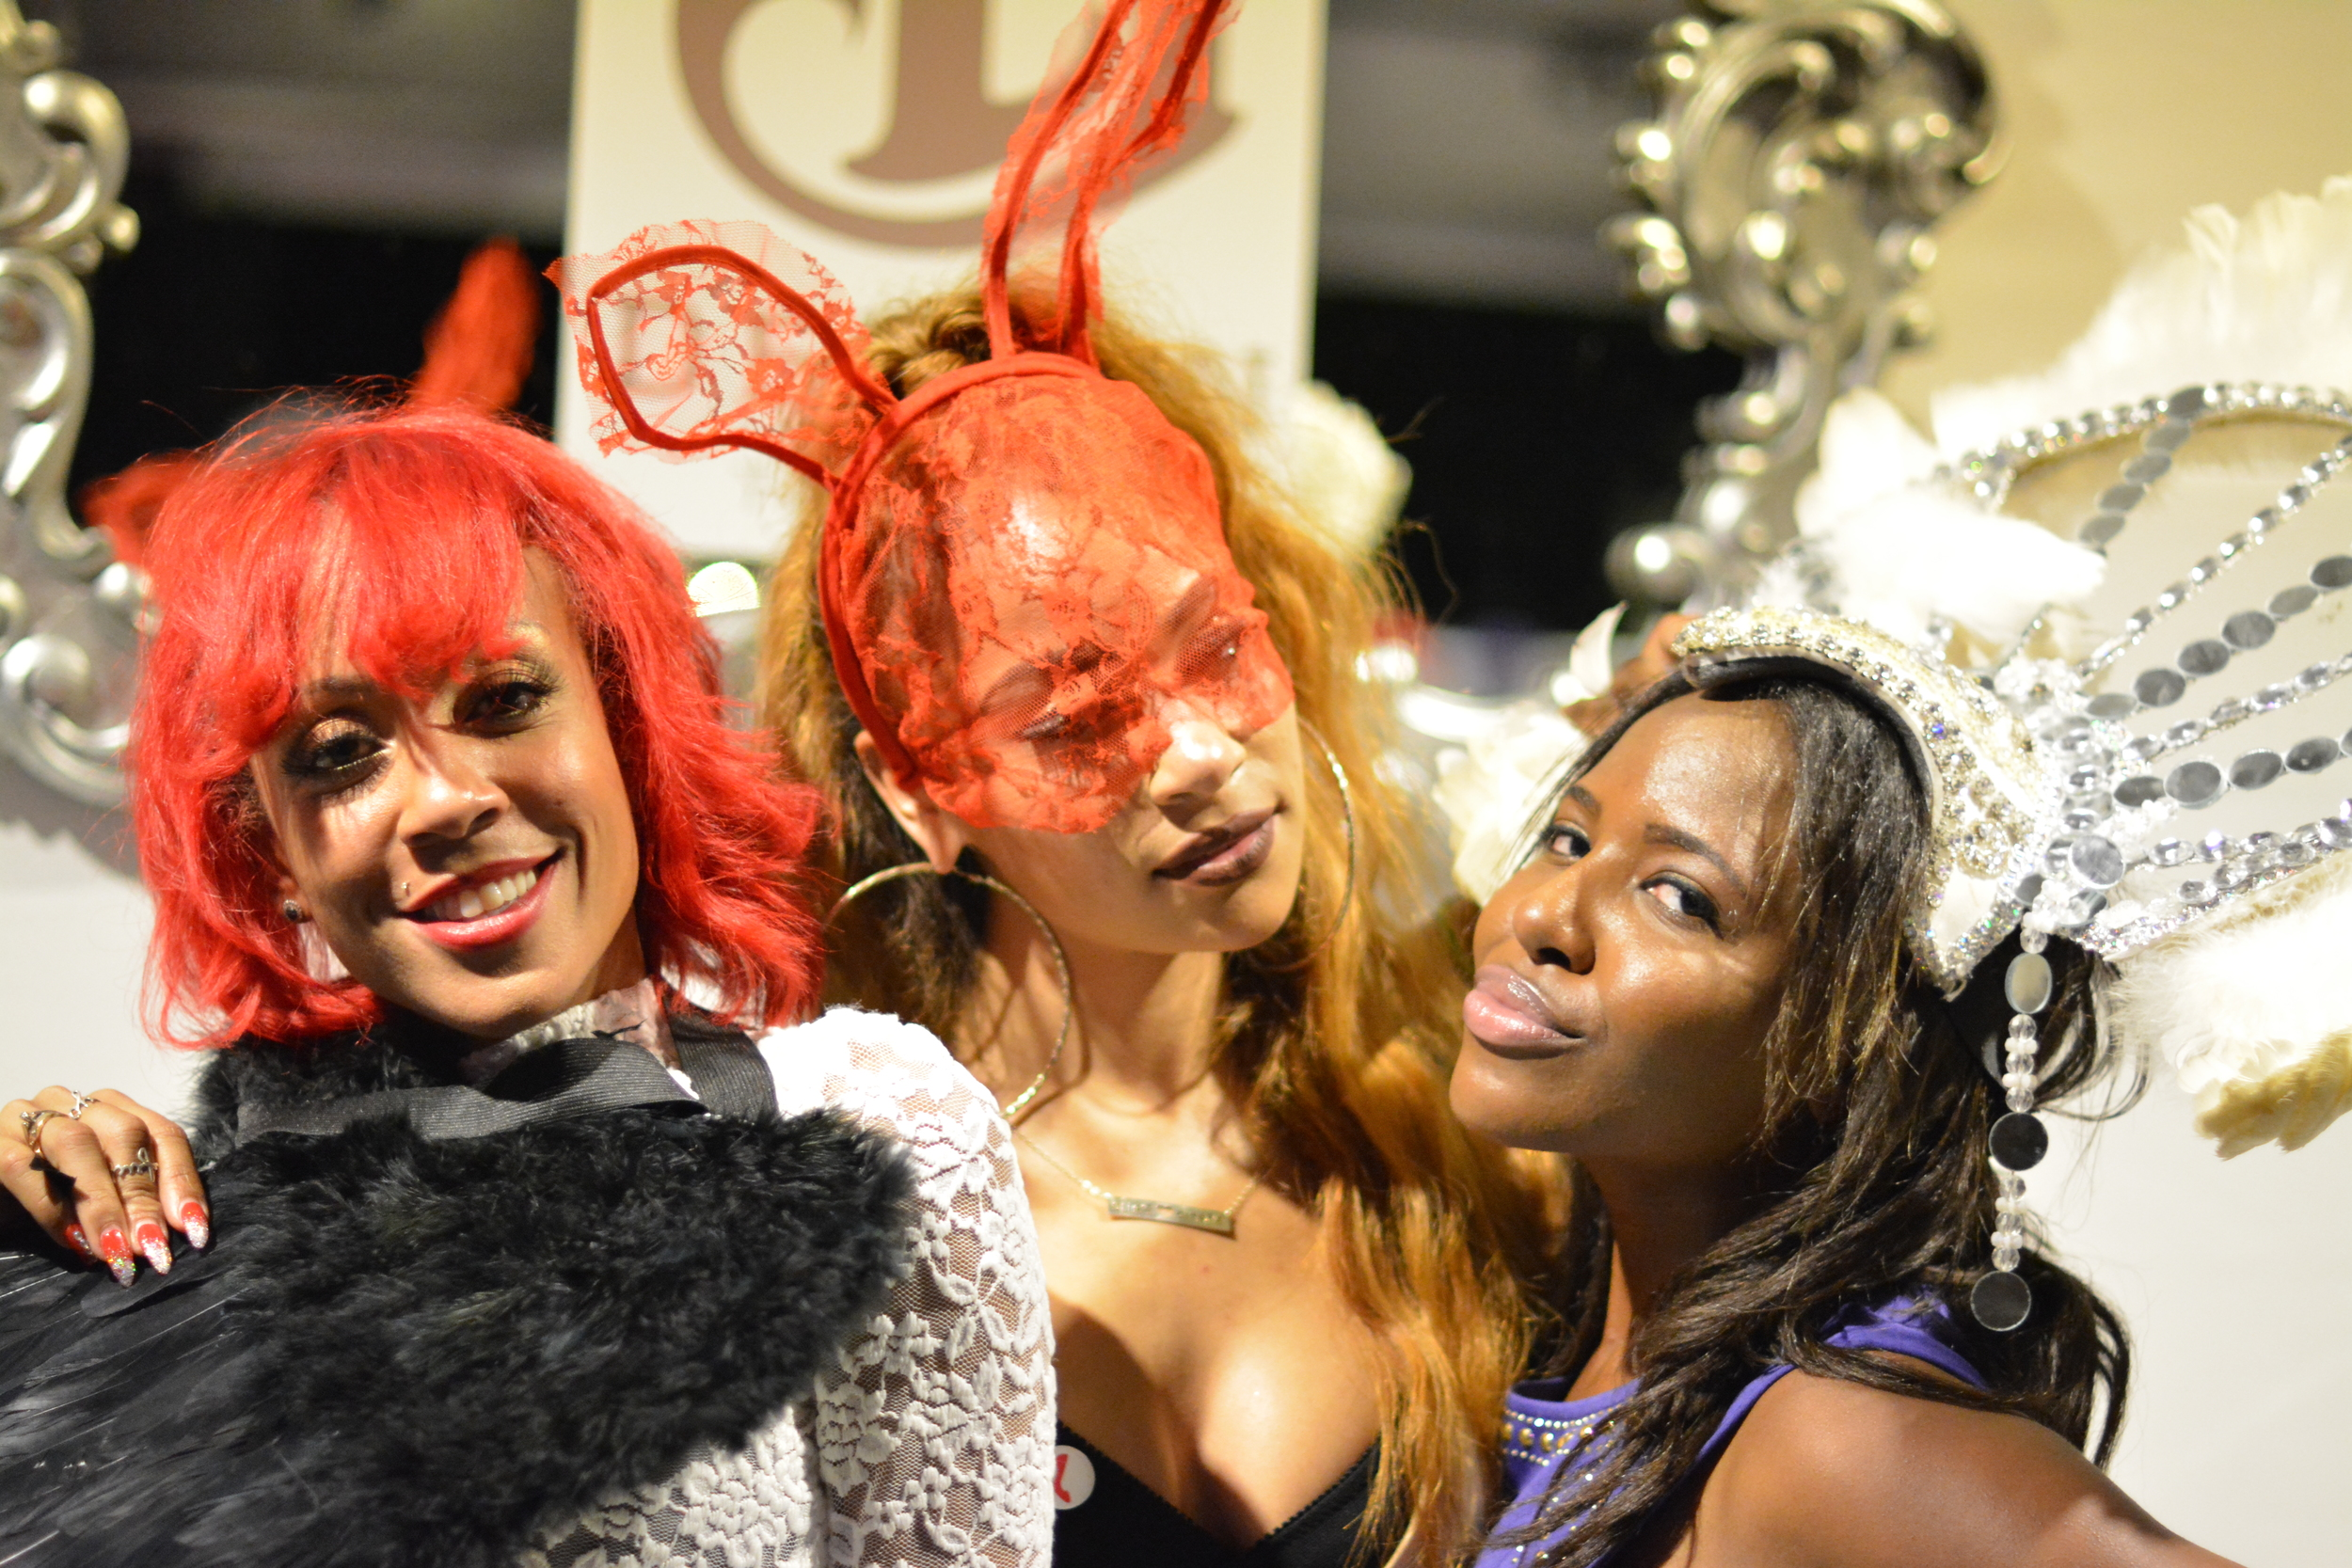 Fasion designer Paije Speights (center of image -@front_paije) plays dress-up at the Funksion after party